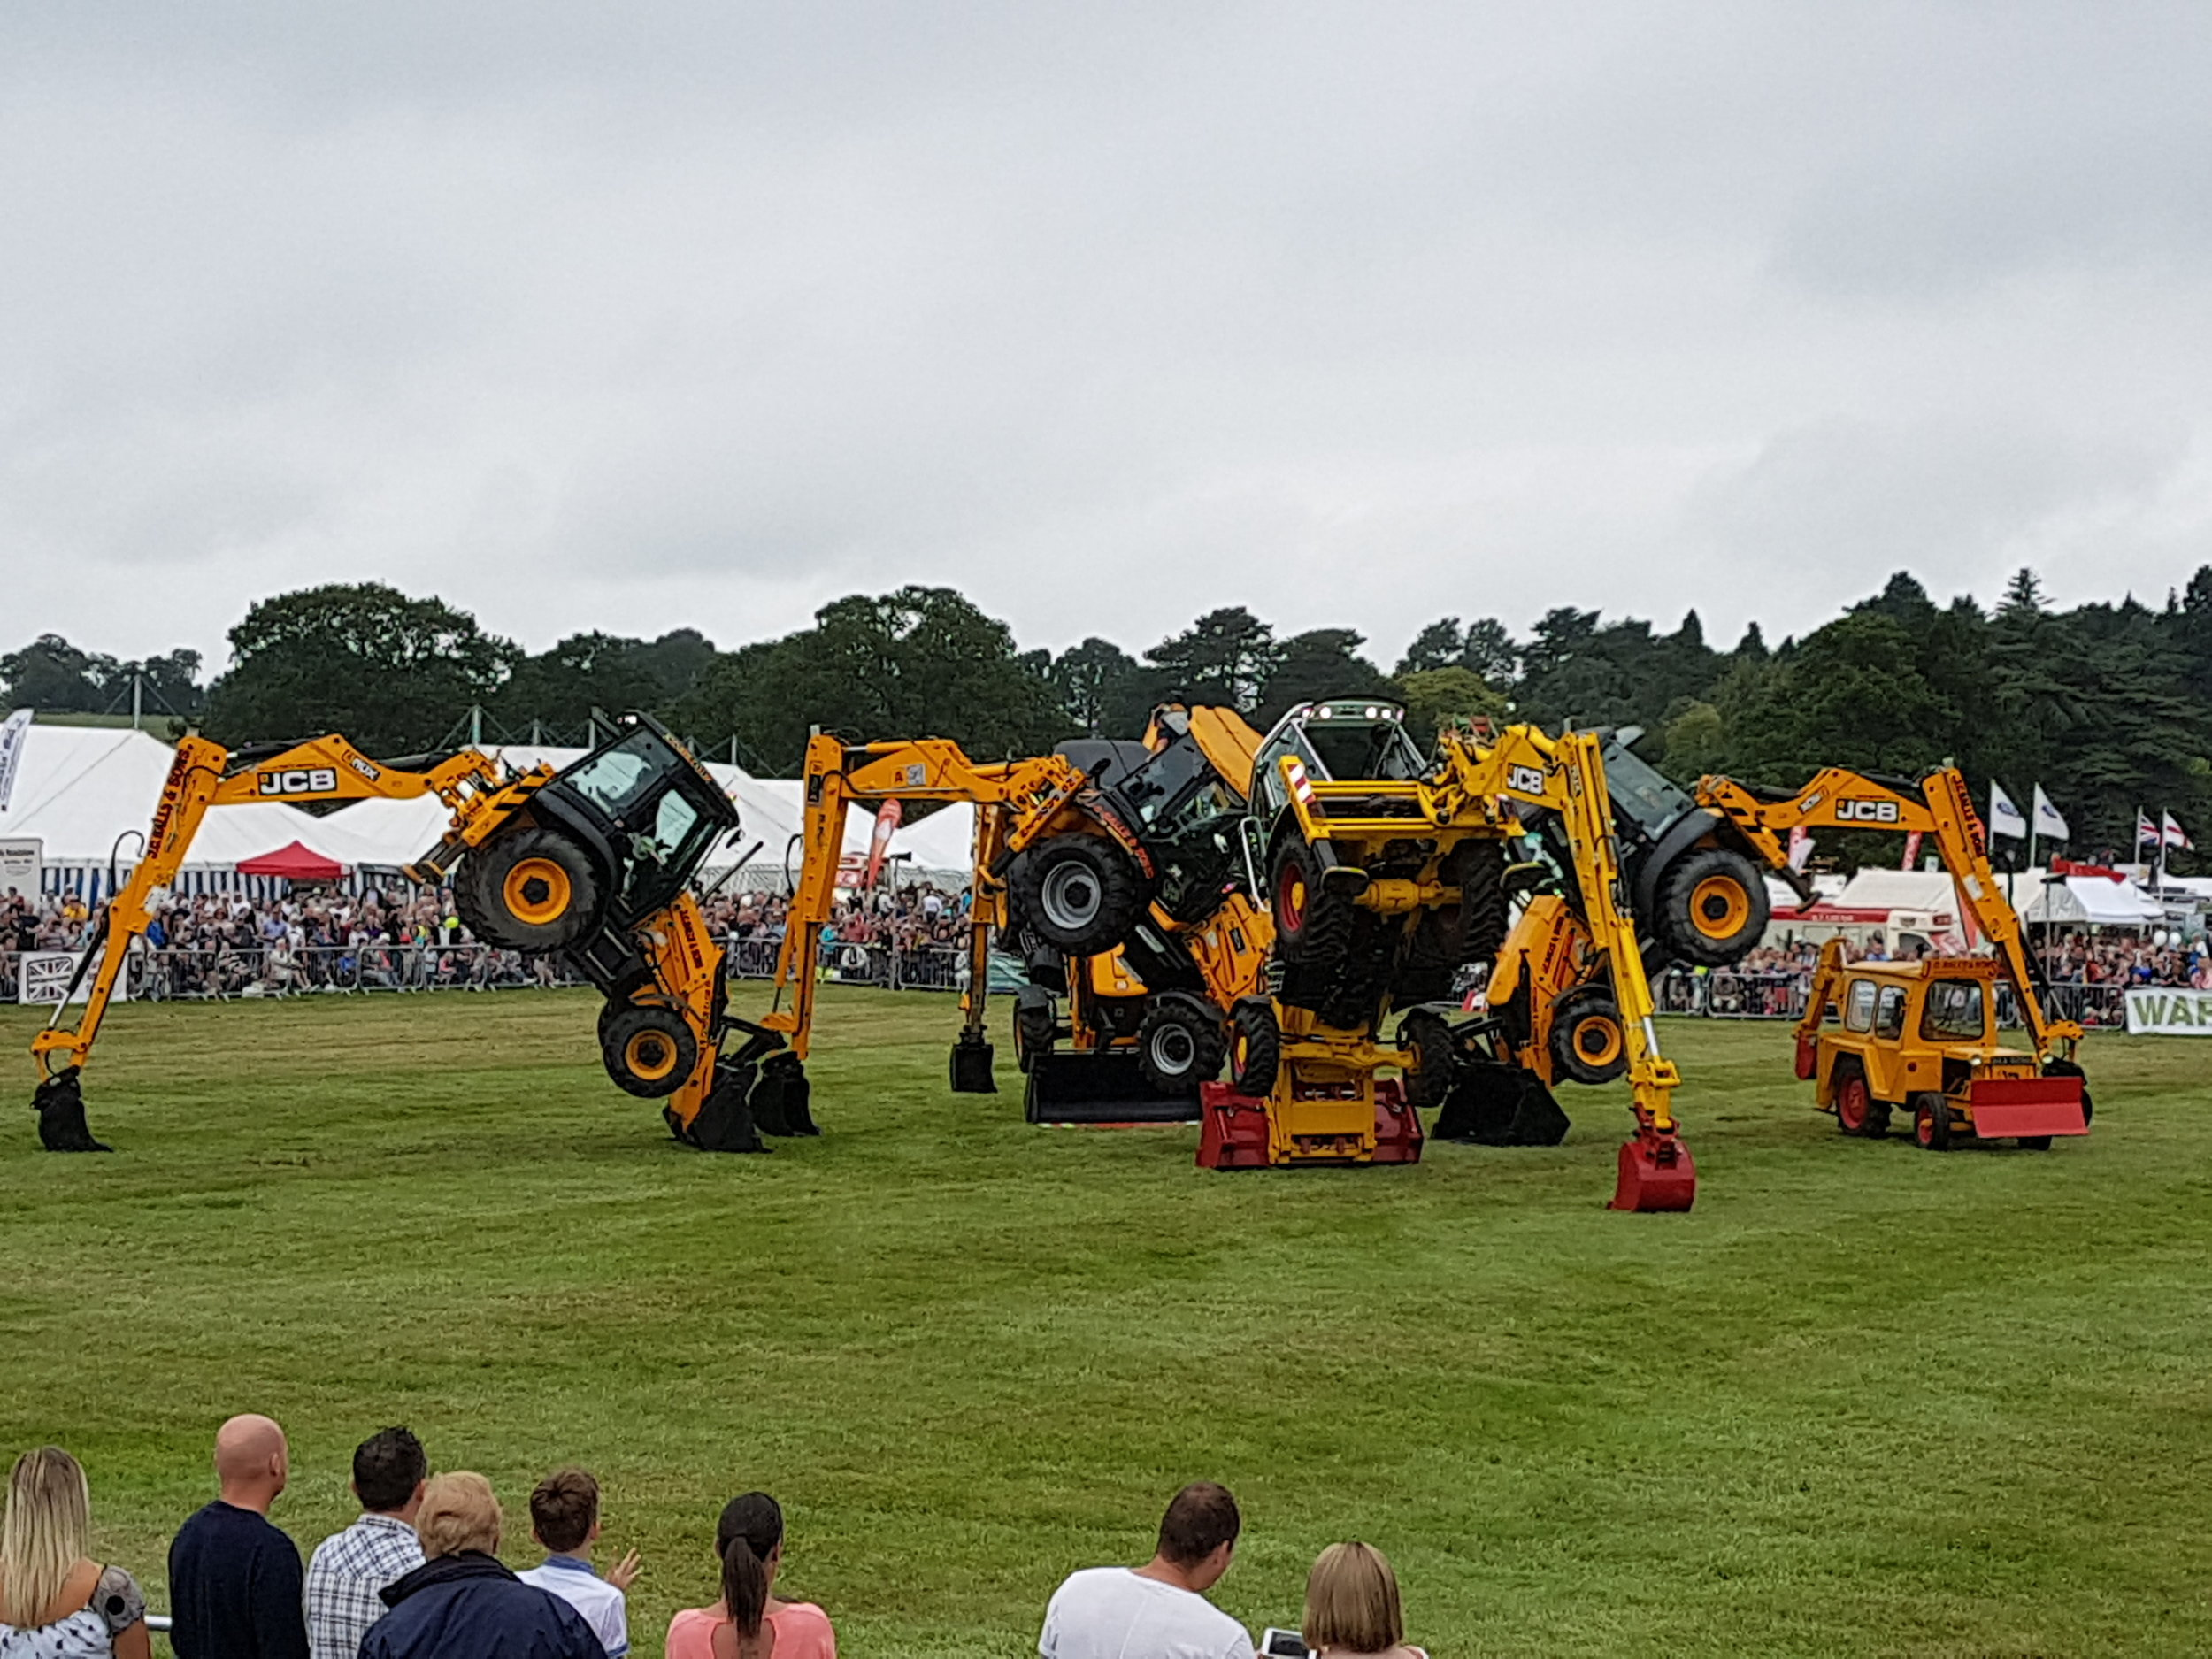 The J C Balls Dancing Diggers will be at the 138th Derbyshire County Show. Penguin PR - public relations, media and communications